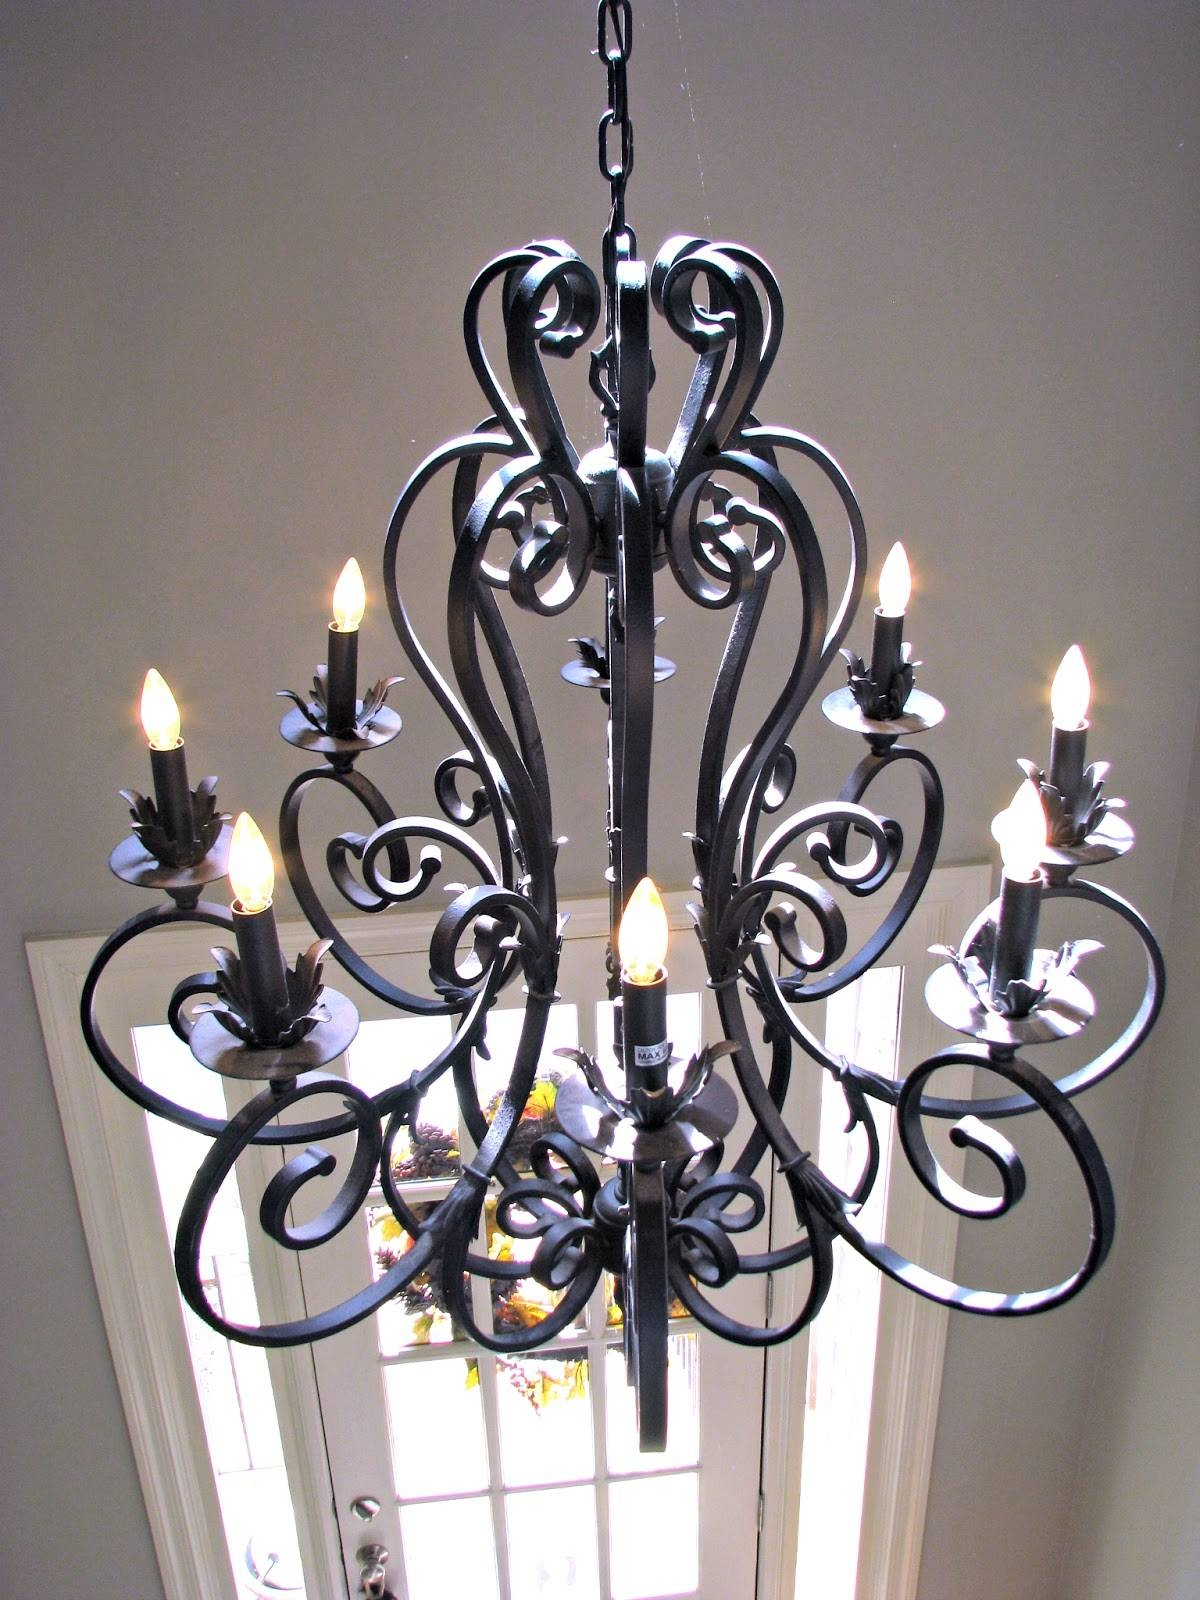 Wrought Iron Lighting Fixtures | Roselawnlutheran for Wrought Iron Lights Fixtures For Kitchens (Image 13 of 15)